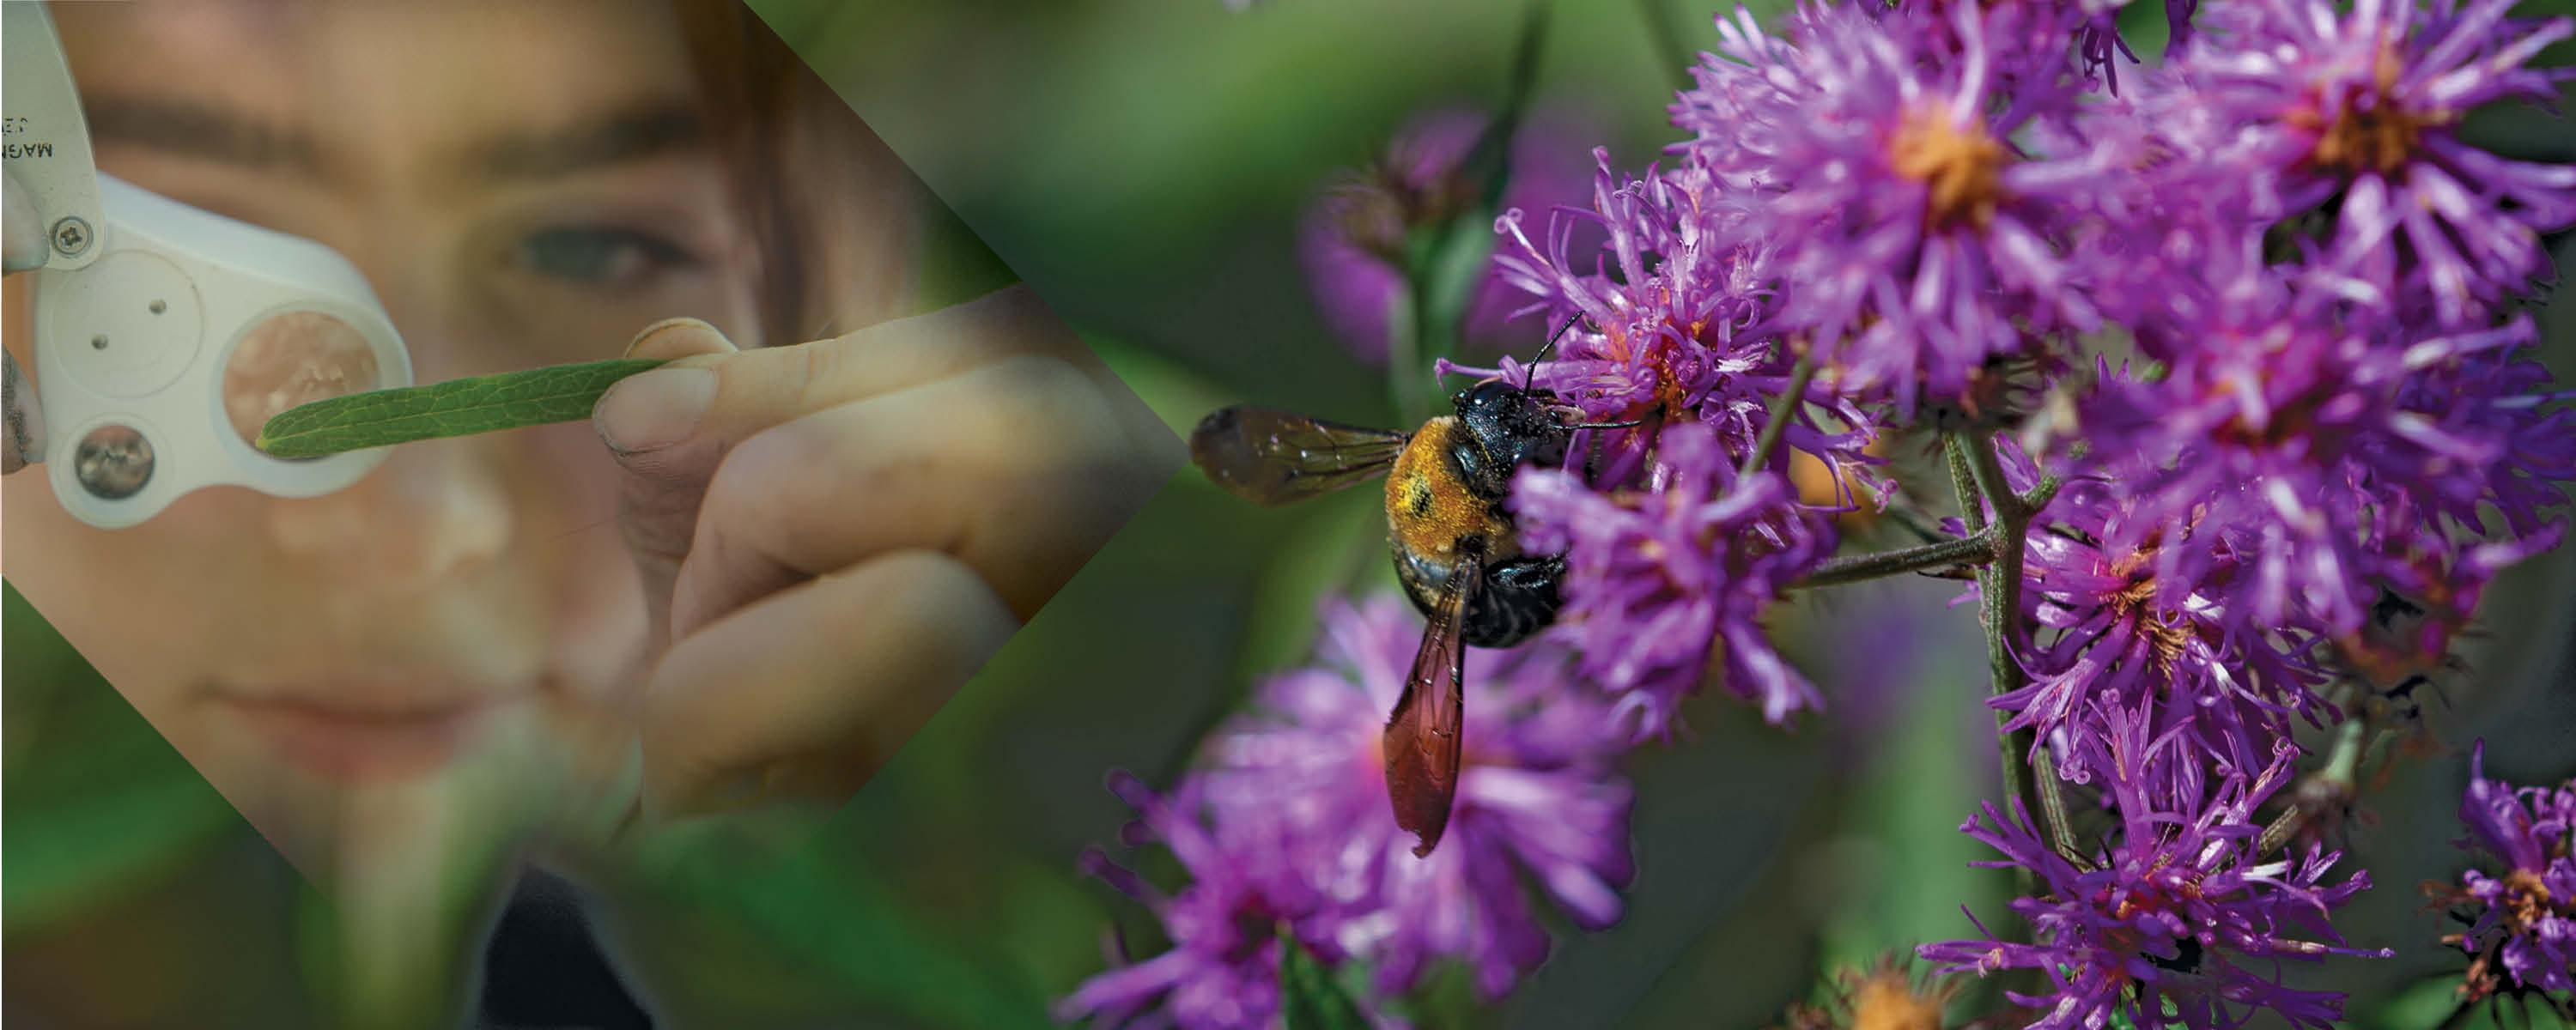 Bee on a purple flower, student inspecting a plant